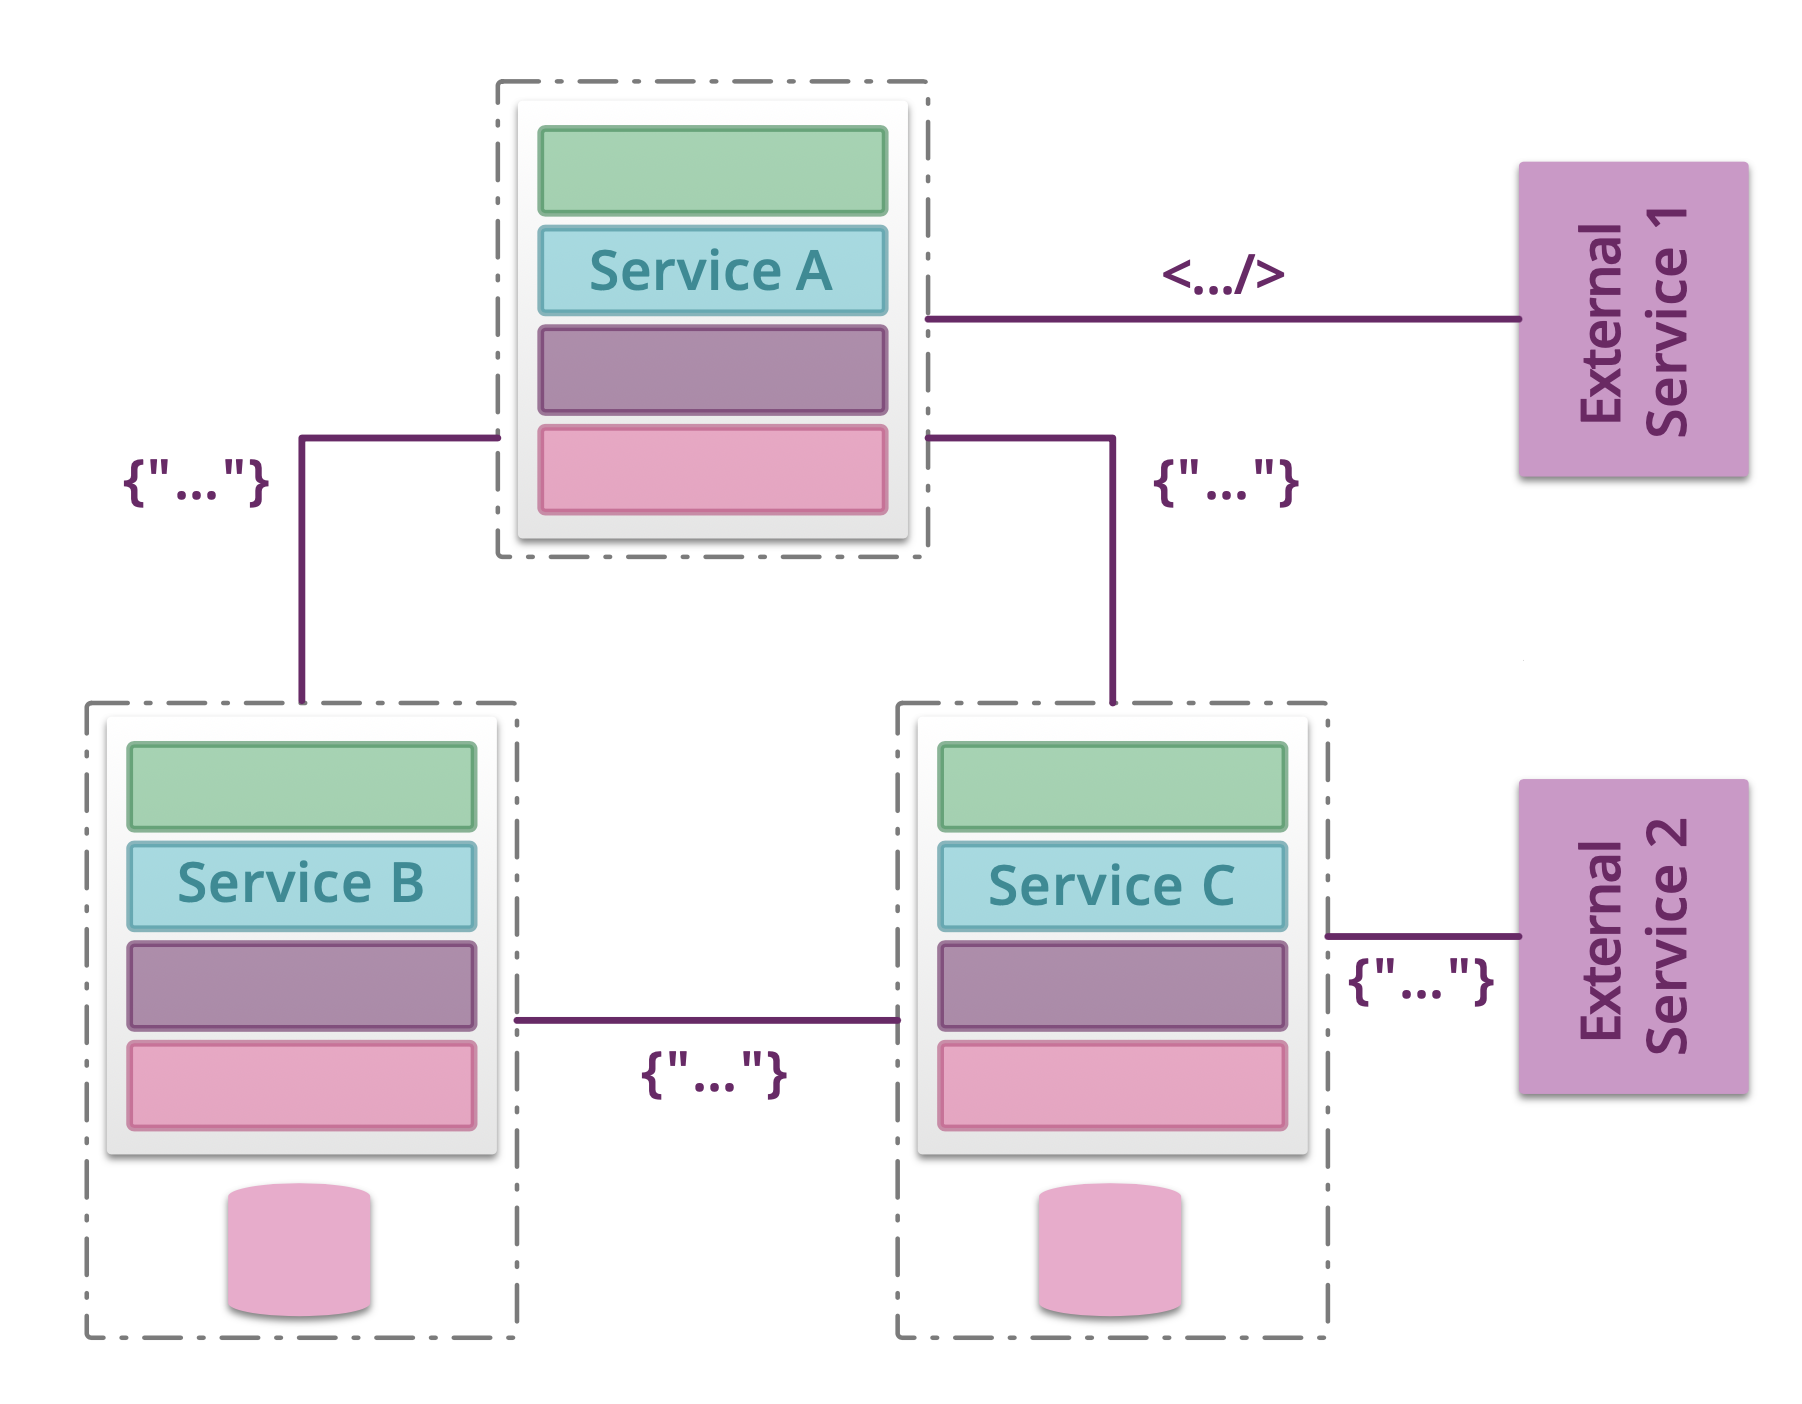 ../../_images/testing-microservices-03.png